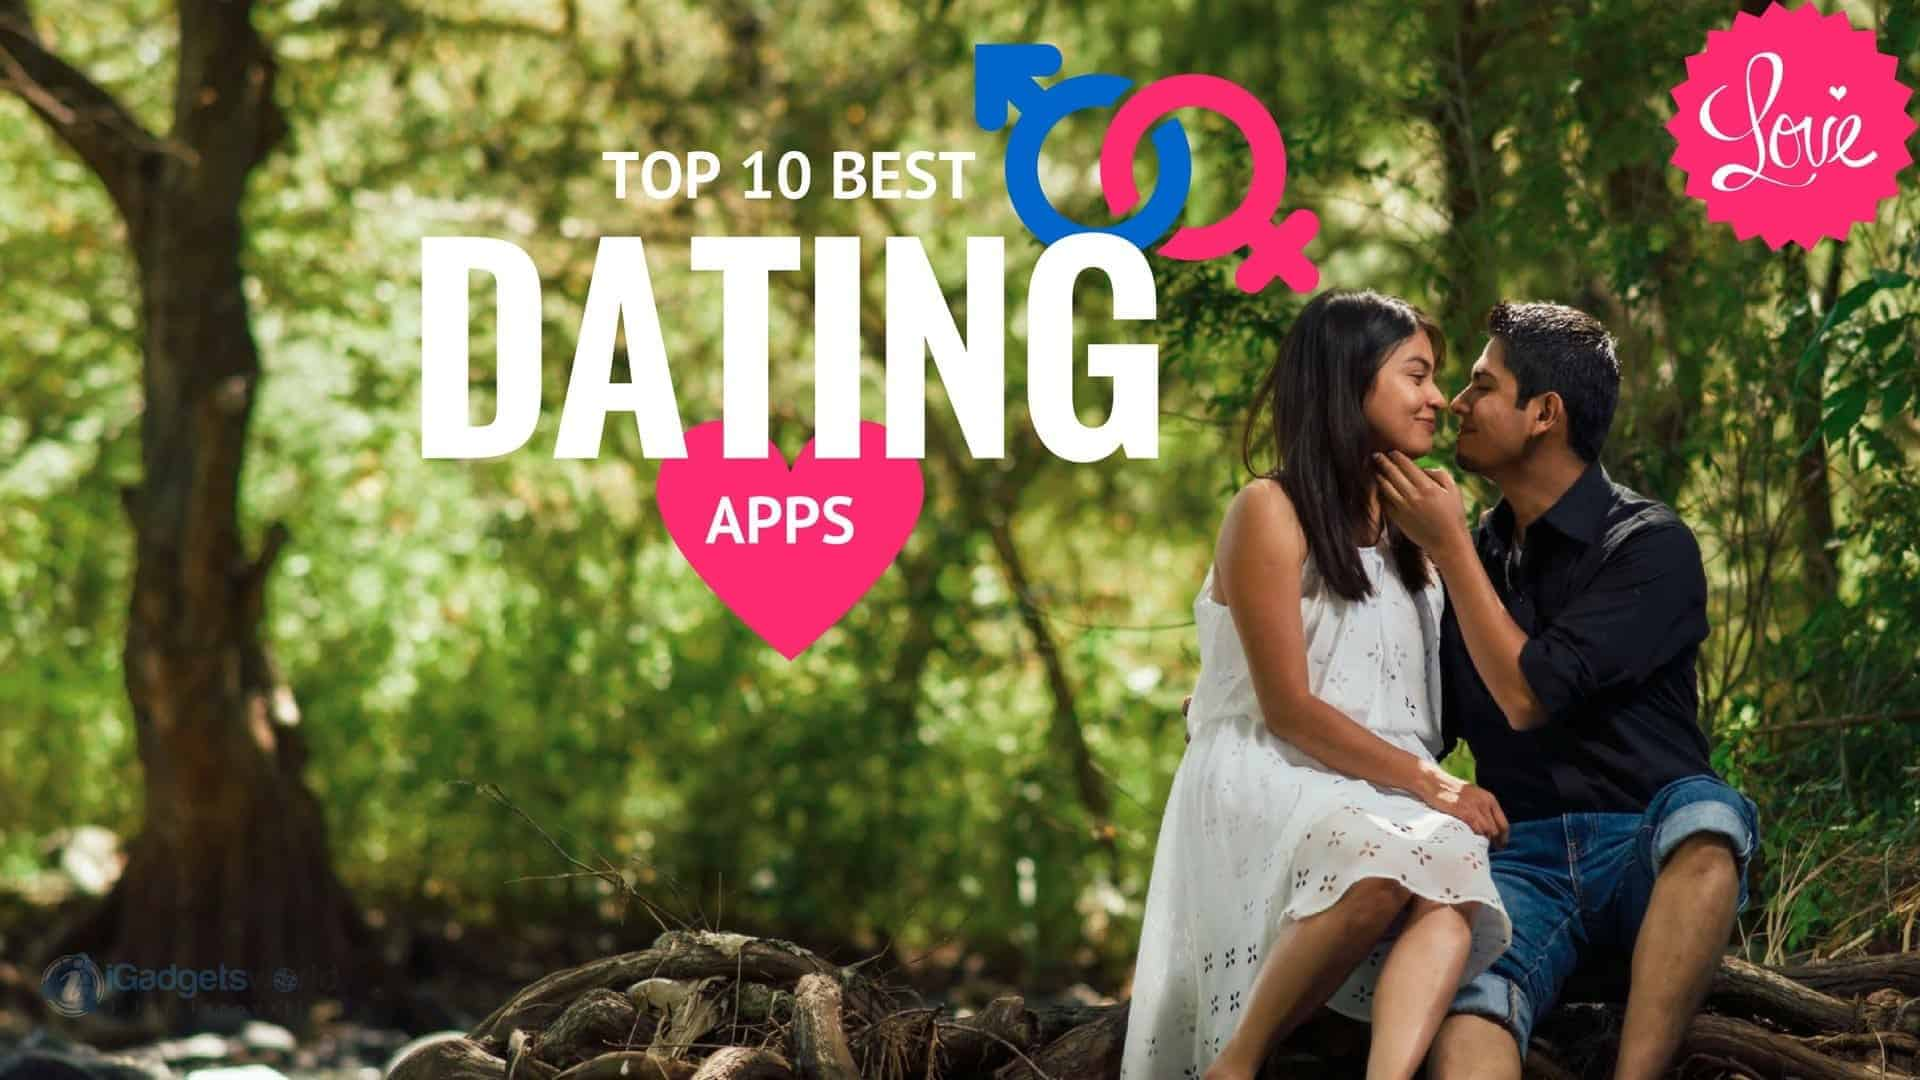 indian free dating app Experience better free online dating mesh combines advanced message filtering, smarter matching algorithms and beautiful design to find you better dates, all completely free.